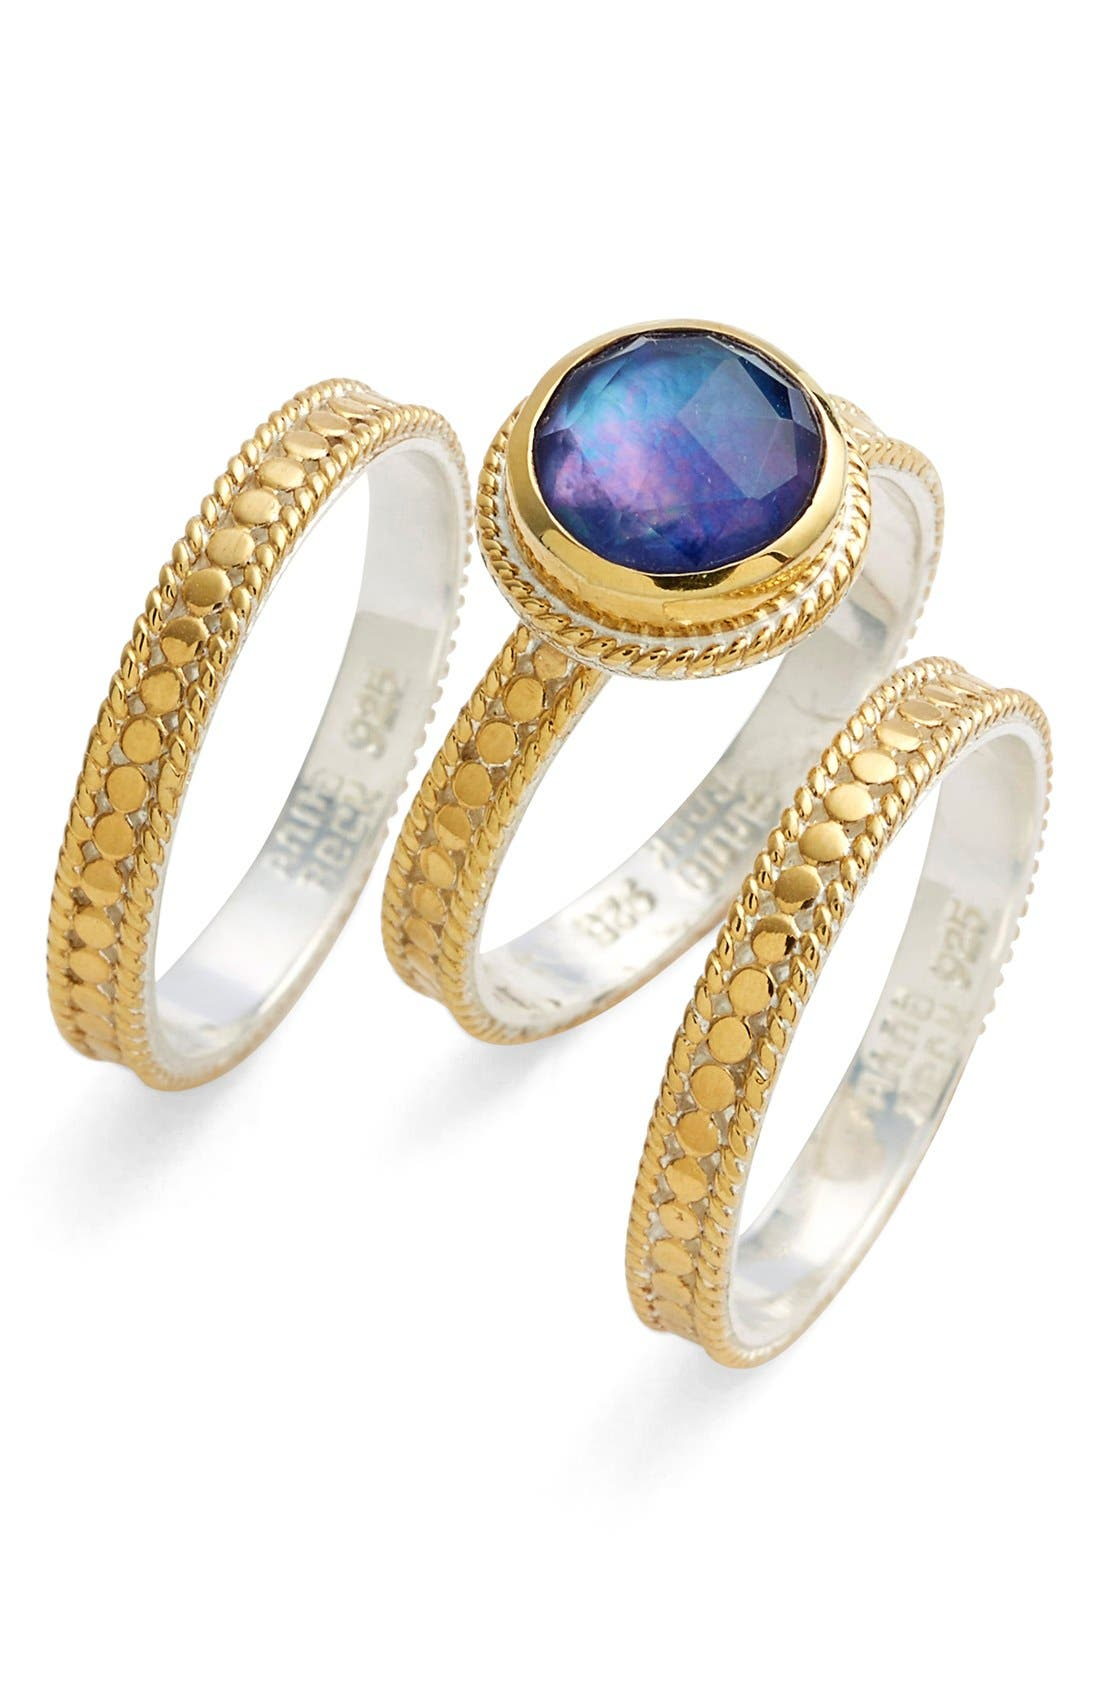 Alternate Image 1 Selected - Anna Beck Stacking Rings (Set of 3)